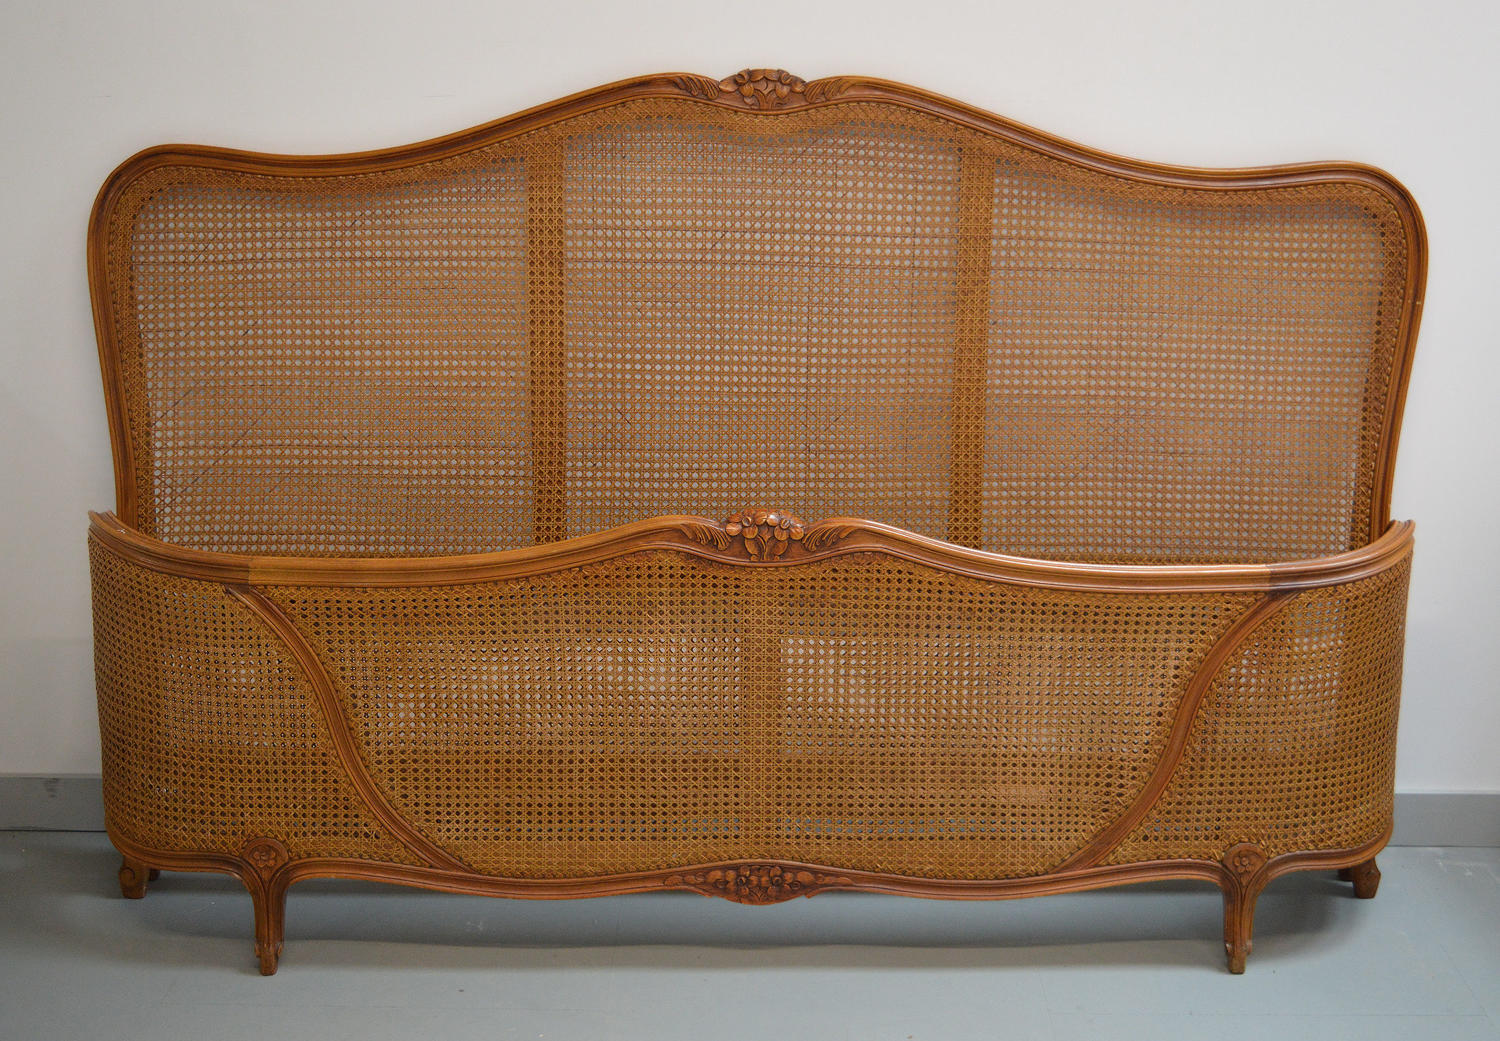 Super King size Louis XV style caned bedstead